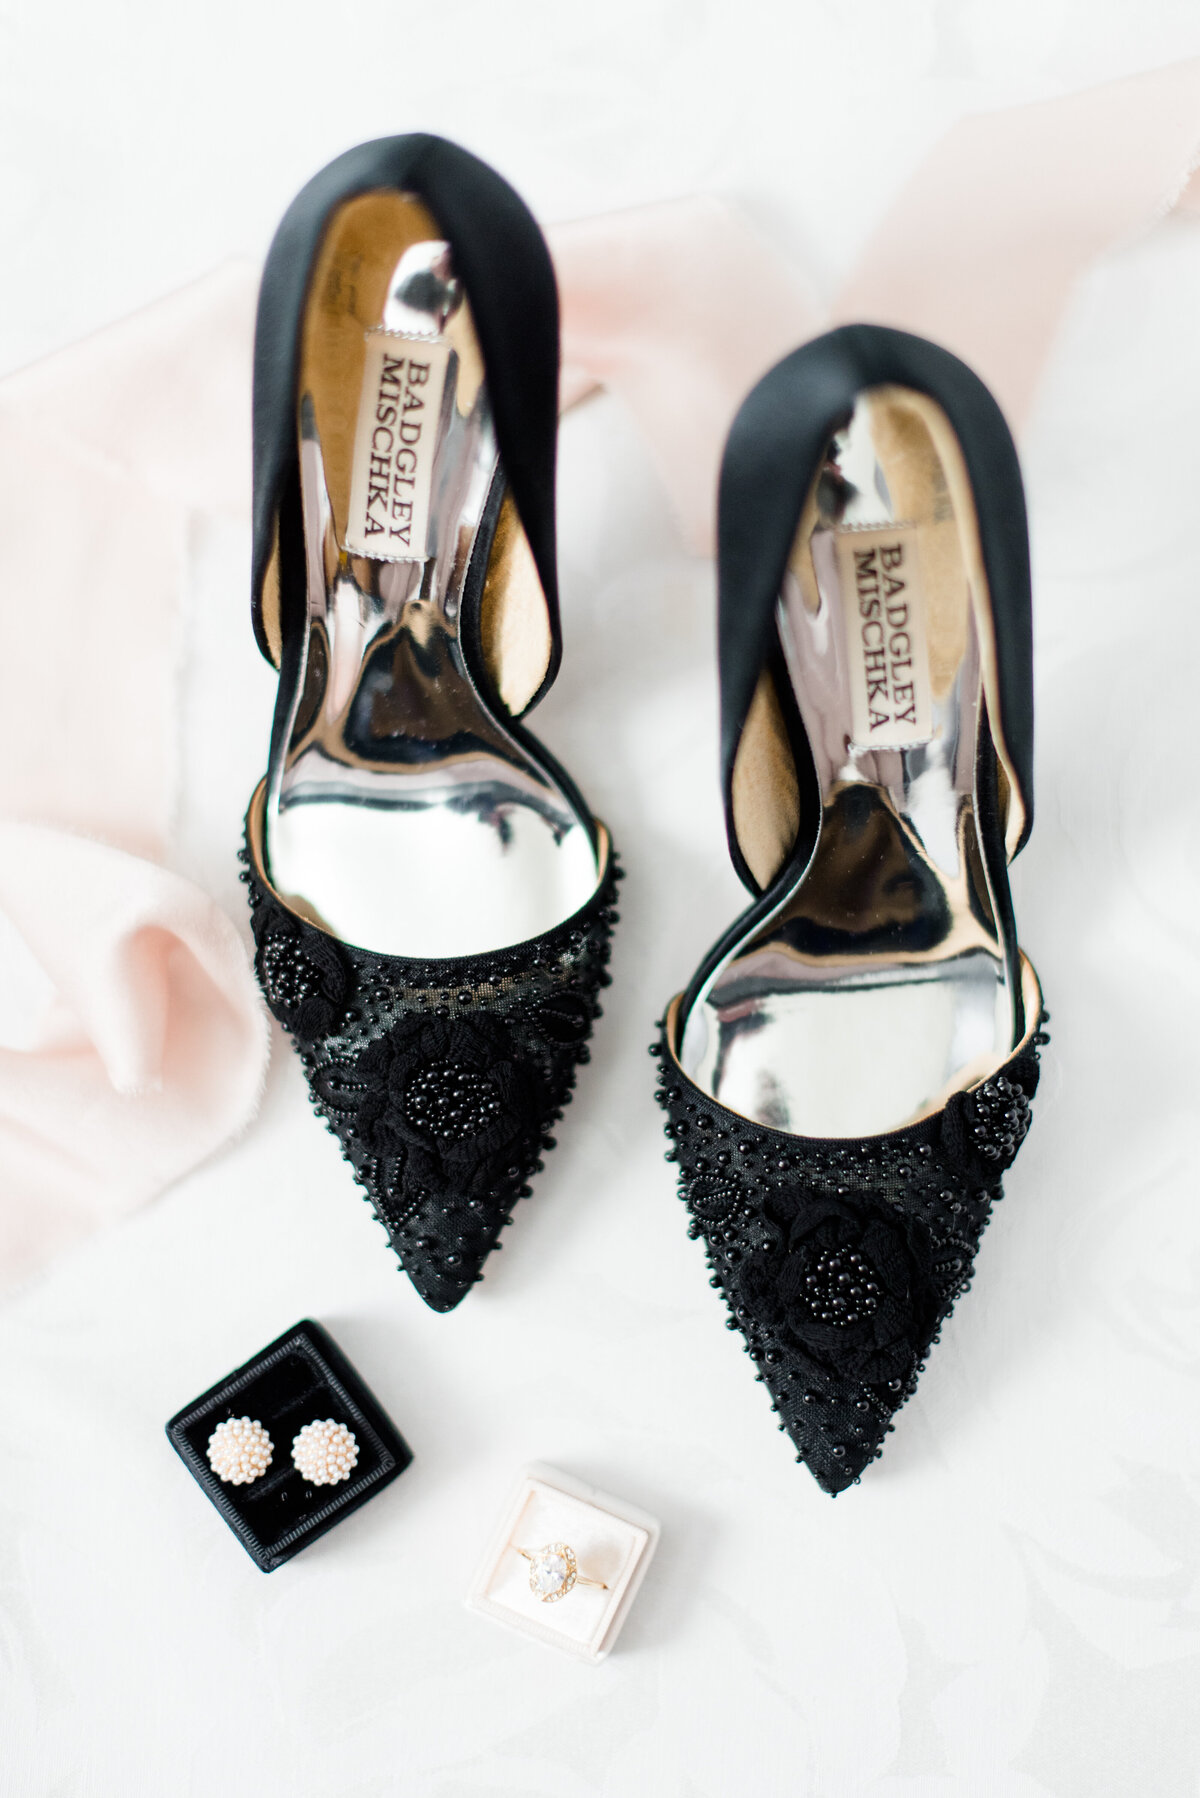 A pair of black pointed toe badgley mischka shoes with flower detail sit on a Kate Spade mat with earrings and rings in The Mrs. Boxes